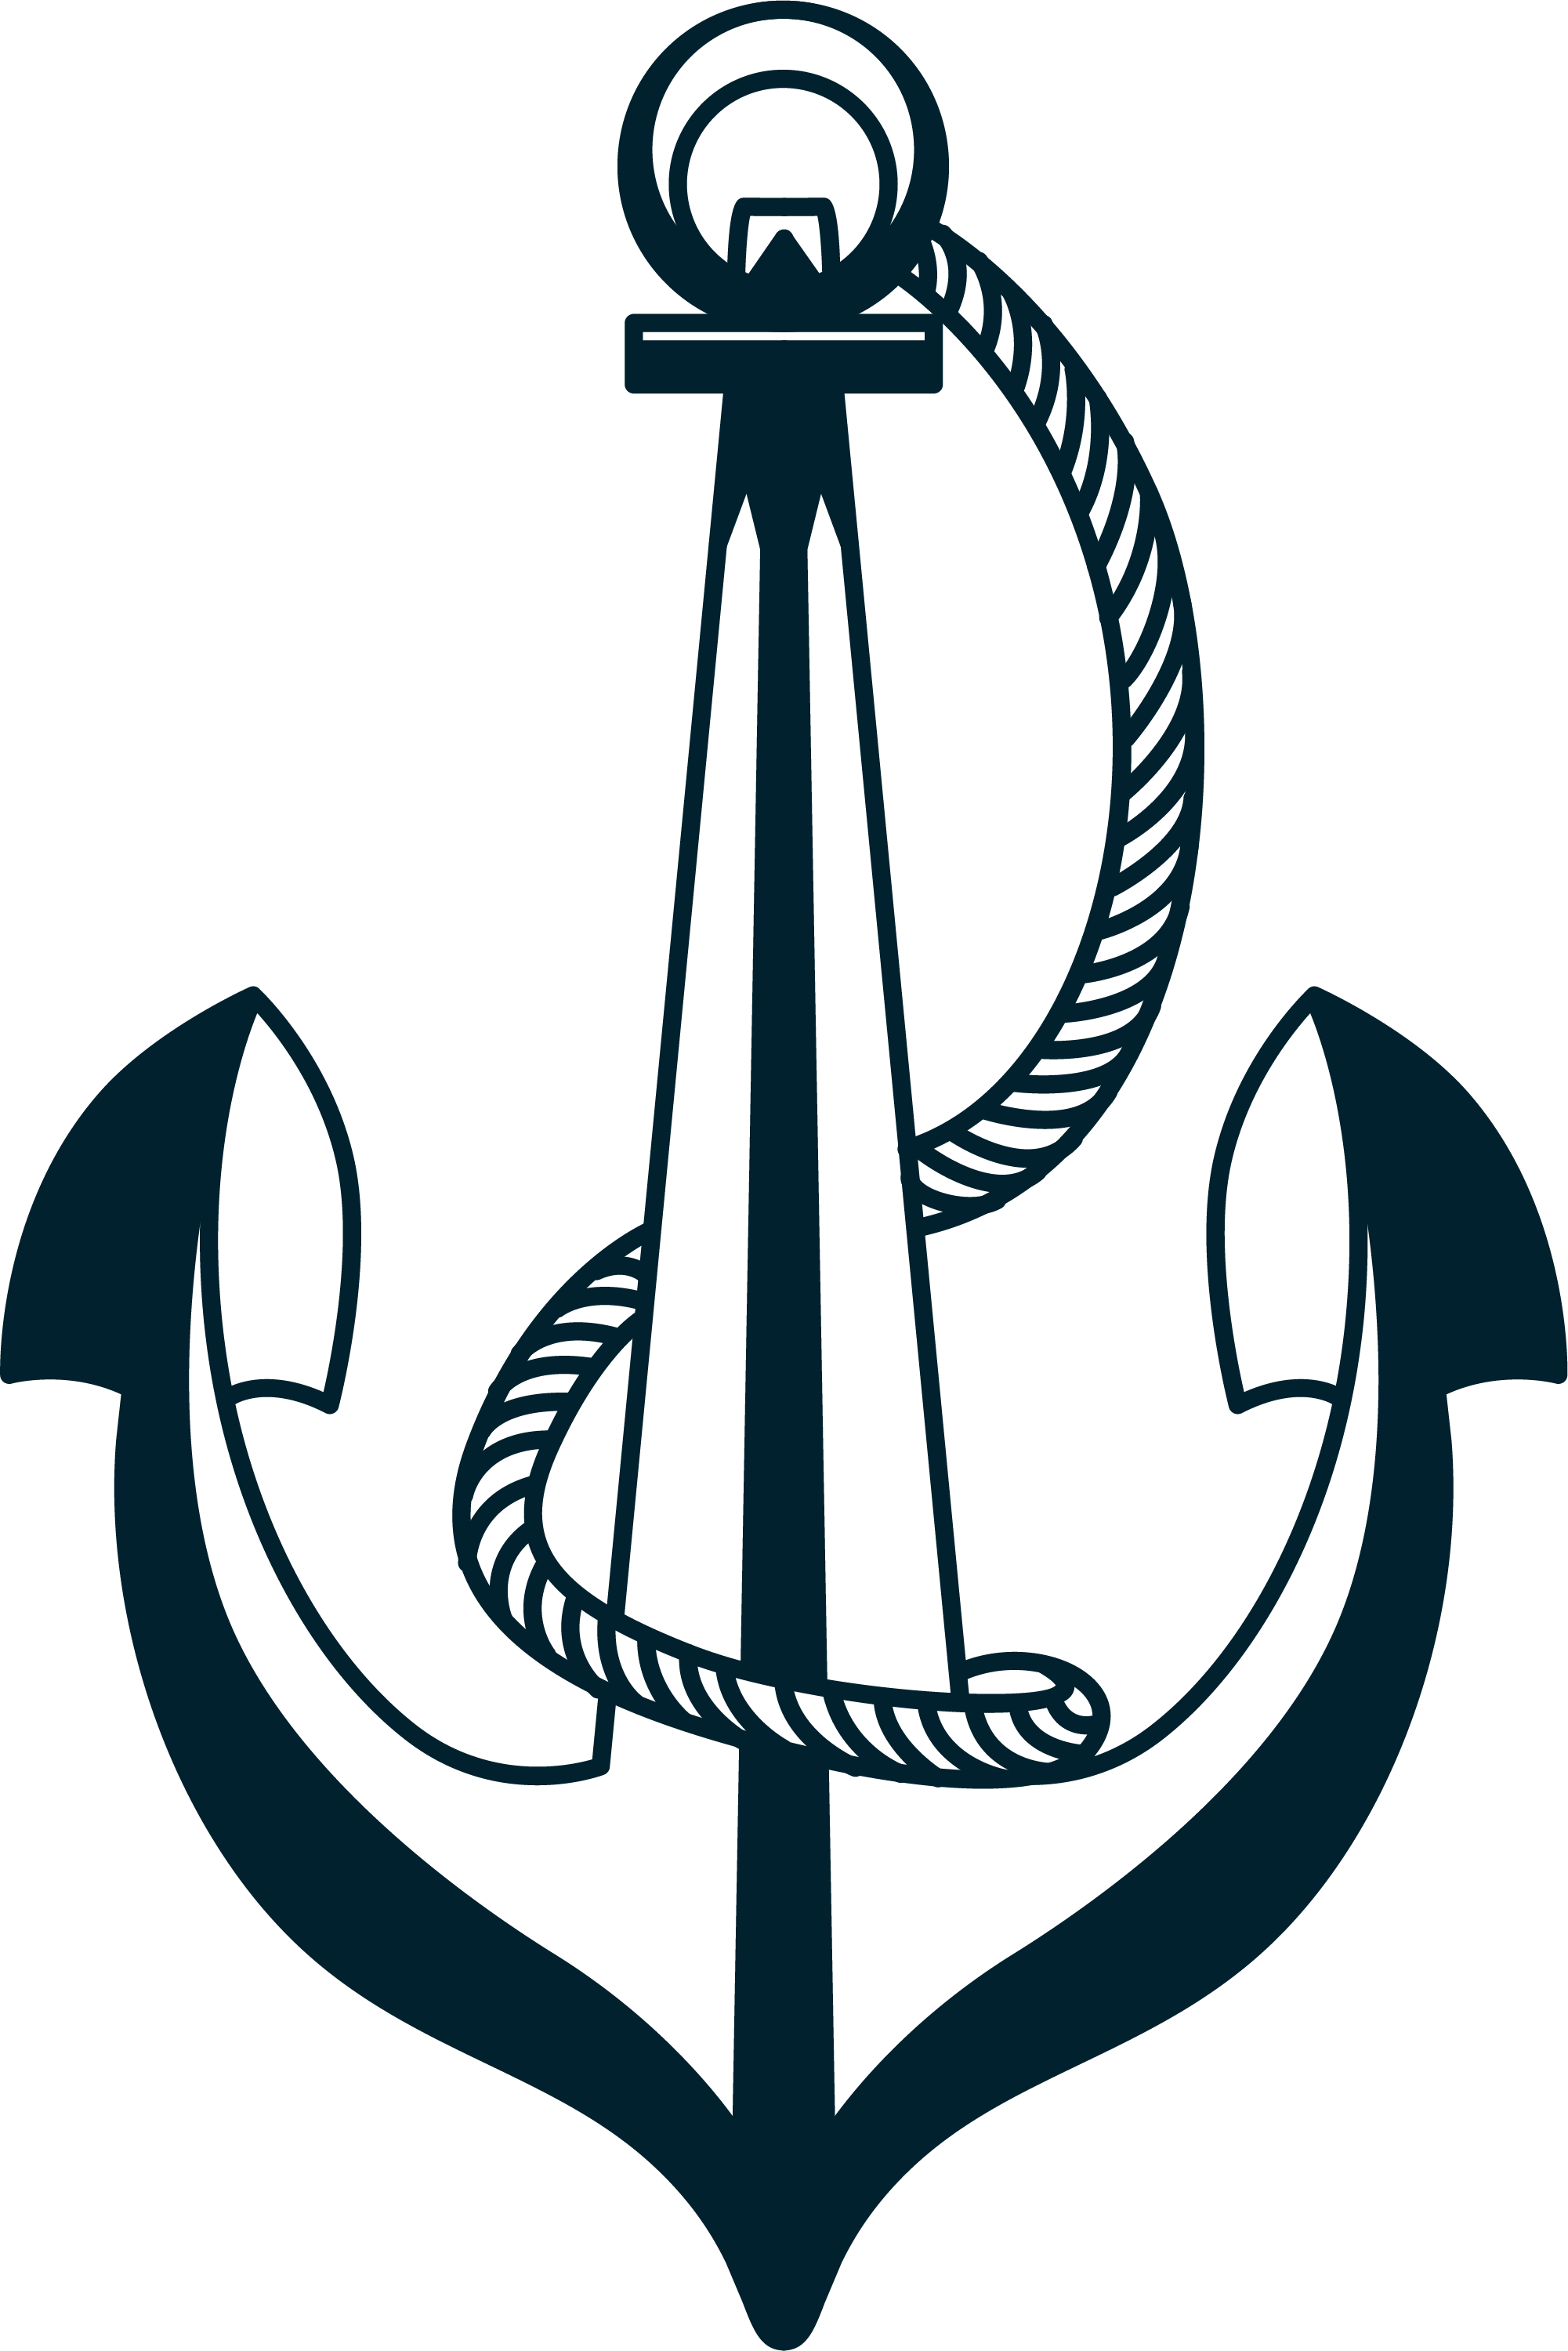 png freeuse library Anchor Ship Watercraft Rope Clip art